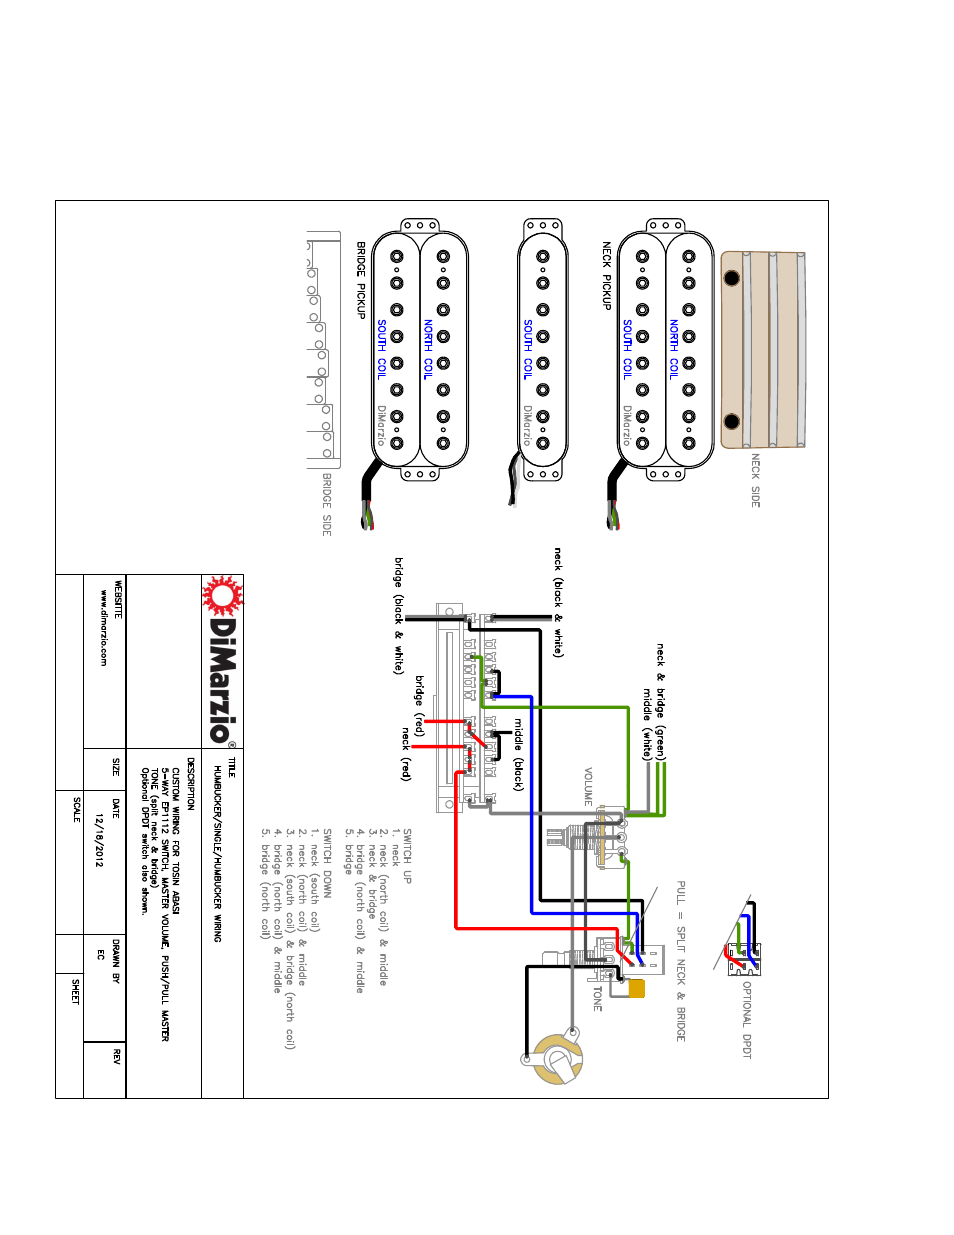 Ibanez Rg 270 Wiring Diagram 5 Way on